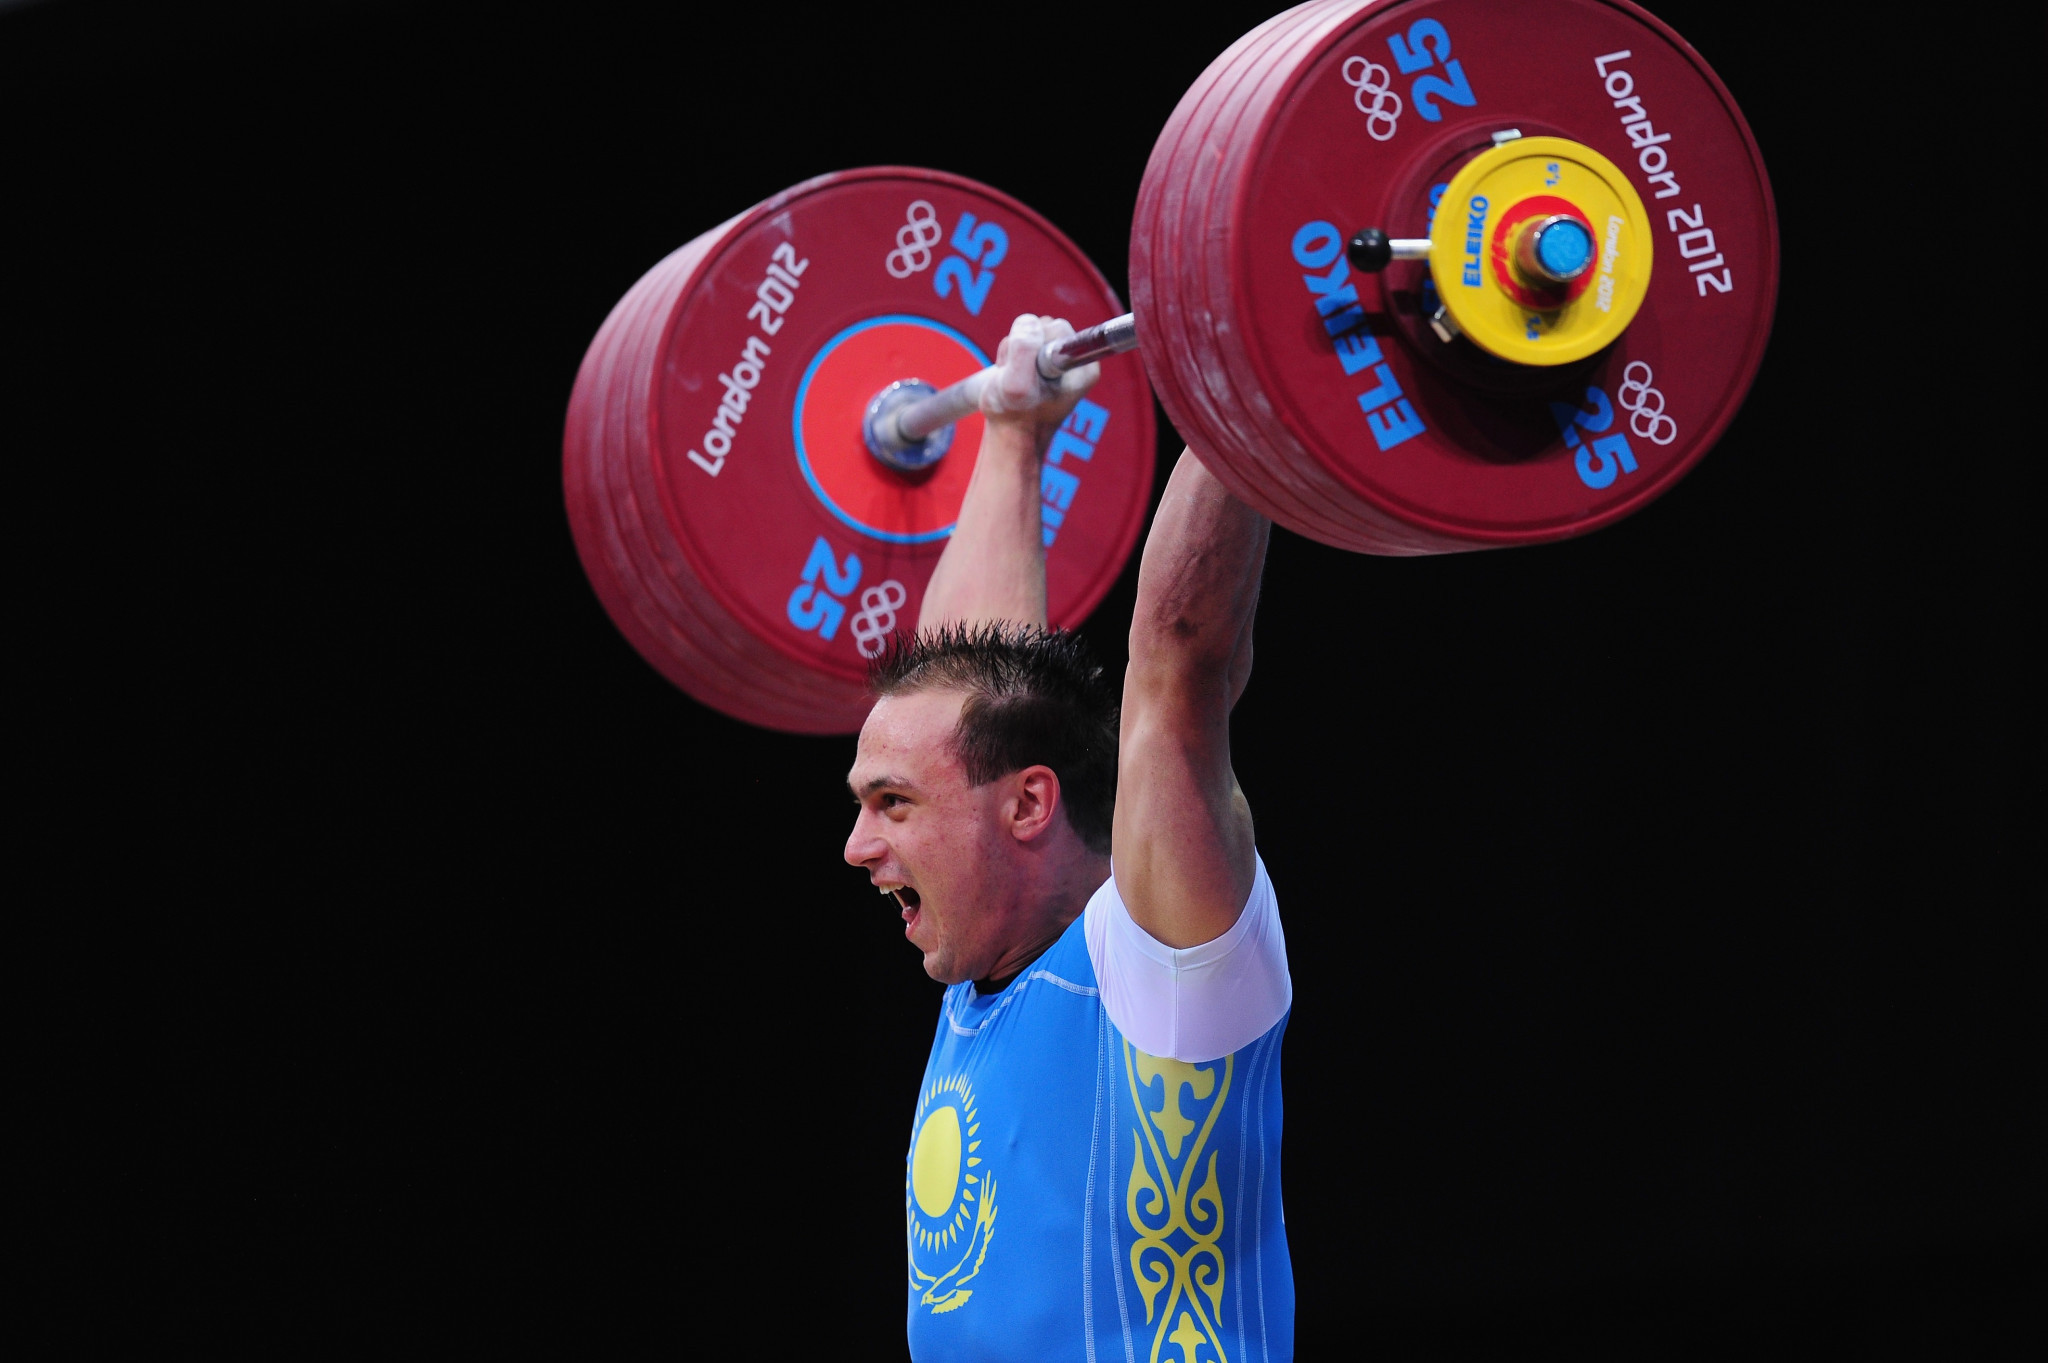 Ilya Ilyin of Kazakhstan was stripped of his two Olympic gold medals ©Getty Images